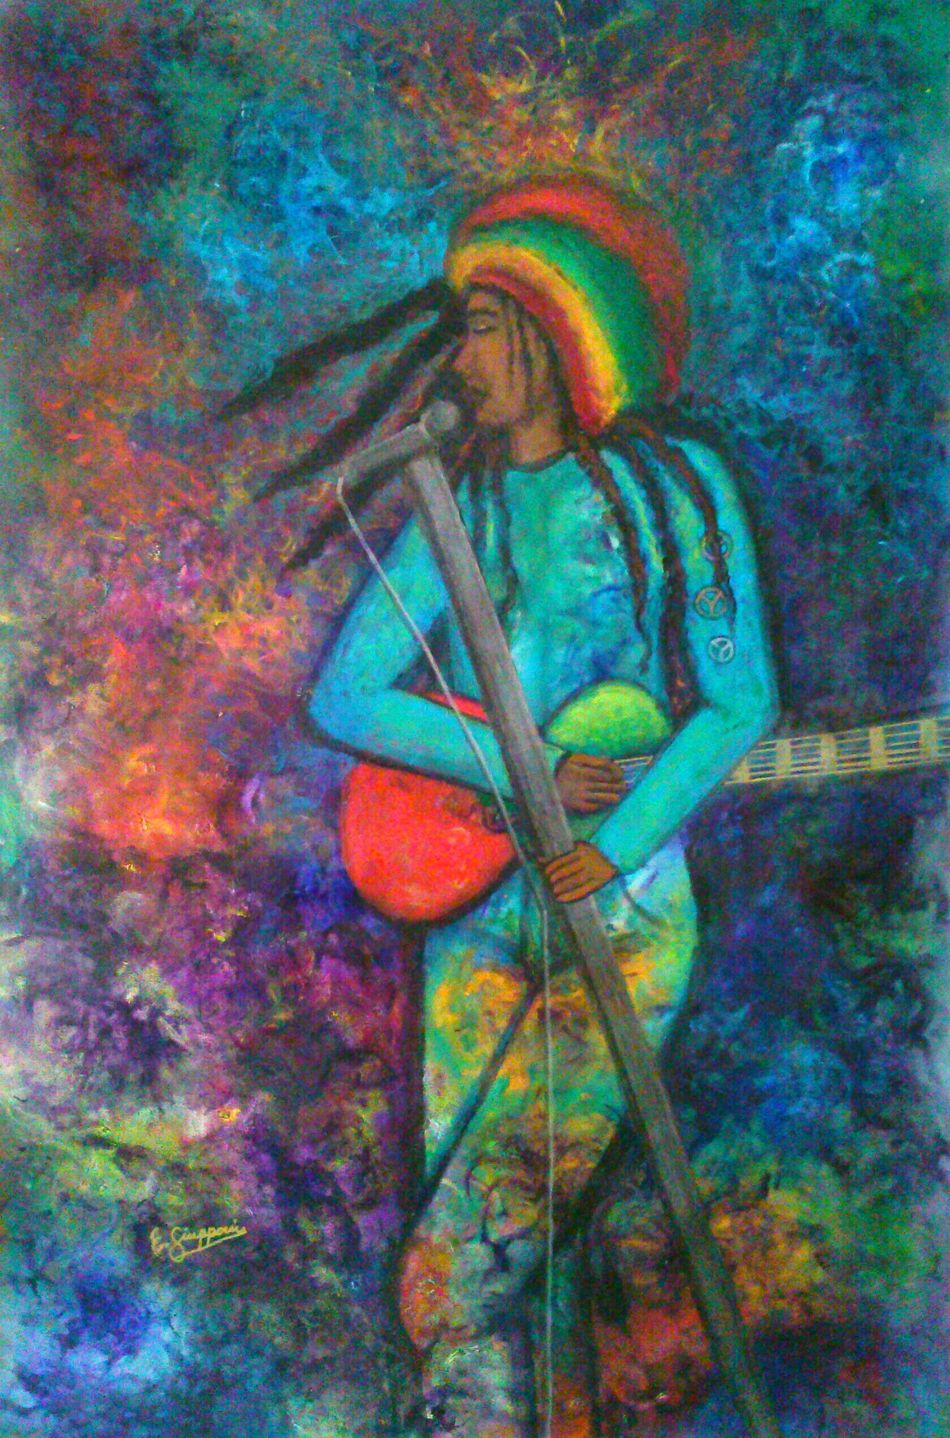 Sweet Bob Marley, Art original oil painting by E. Giupponi Filippa K Asks: What Inspires You? Starbuck At Eden Roc Check This Out